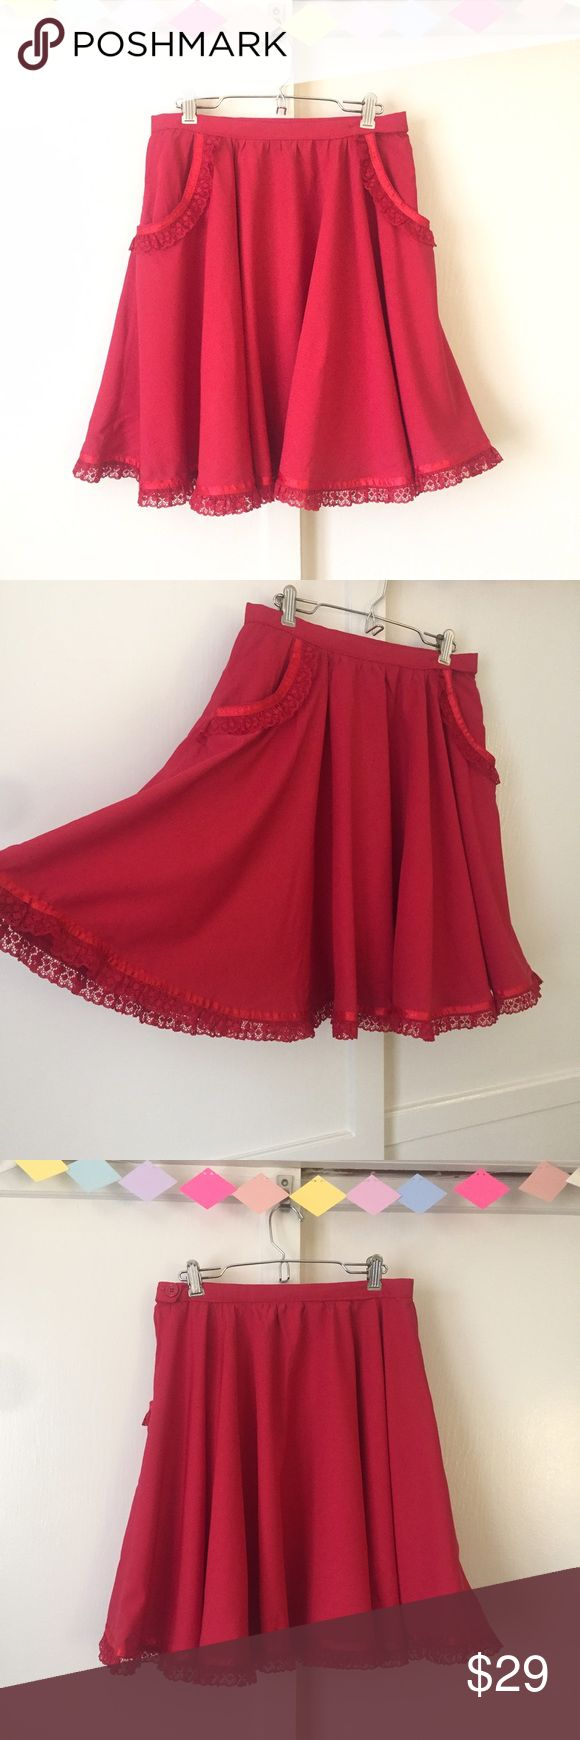 """Red Full Circle Lace Hem Skirt The Full Red Circle Skirt. This is a glorious full circle skirt with the prettiest lace hem! It has pieces of satin trimming that shine in the light as you spin around. Pair this beauty with your favorite stockings and booties to complete the look. No size tag, but would best fit a medium. See the last photo for details on the button closure with some loose stitching. It's on the inside, so it doesn't show at all when you're wearing it.   Waist: 28"""" with…"""